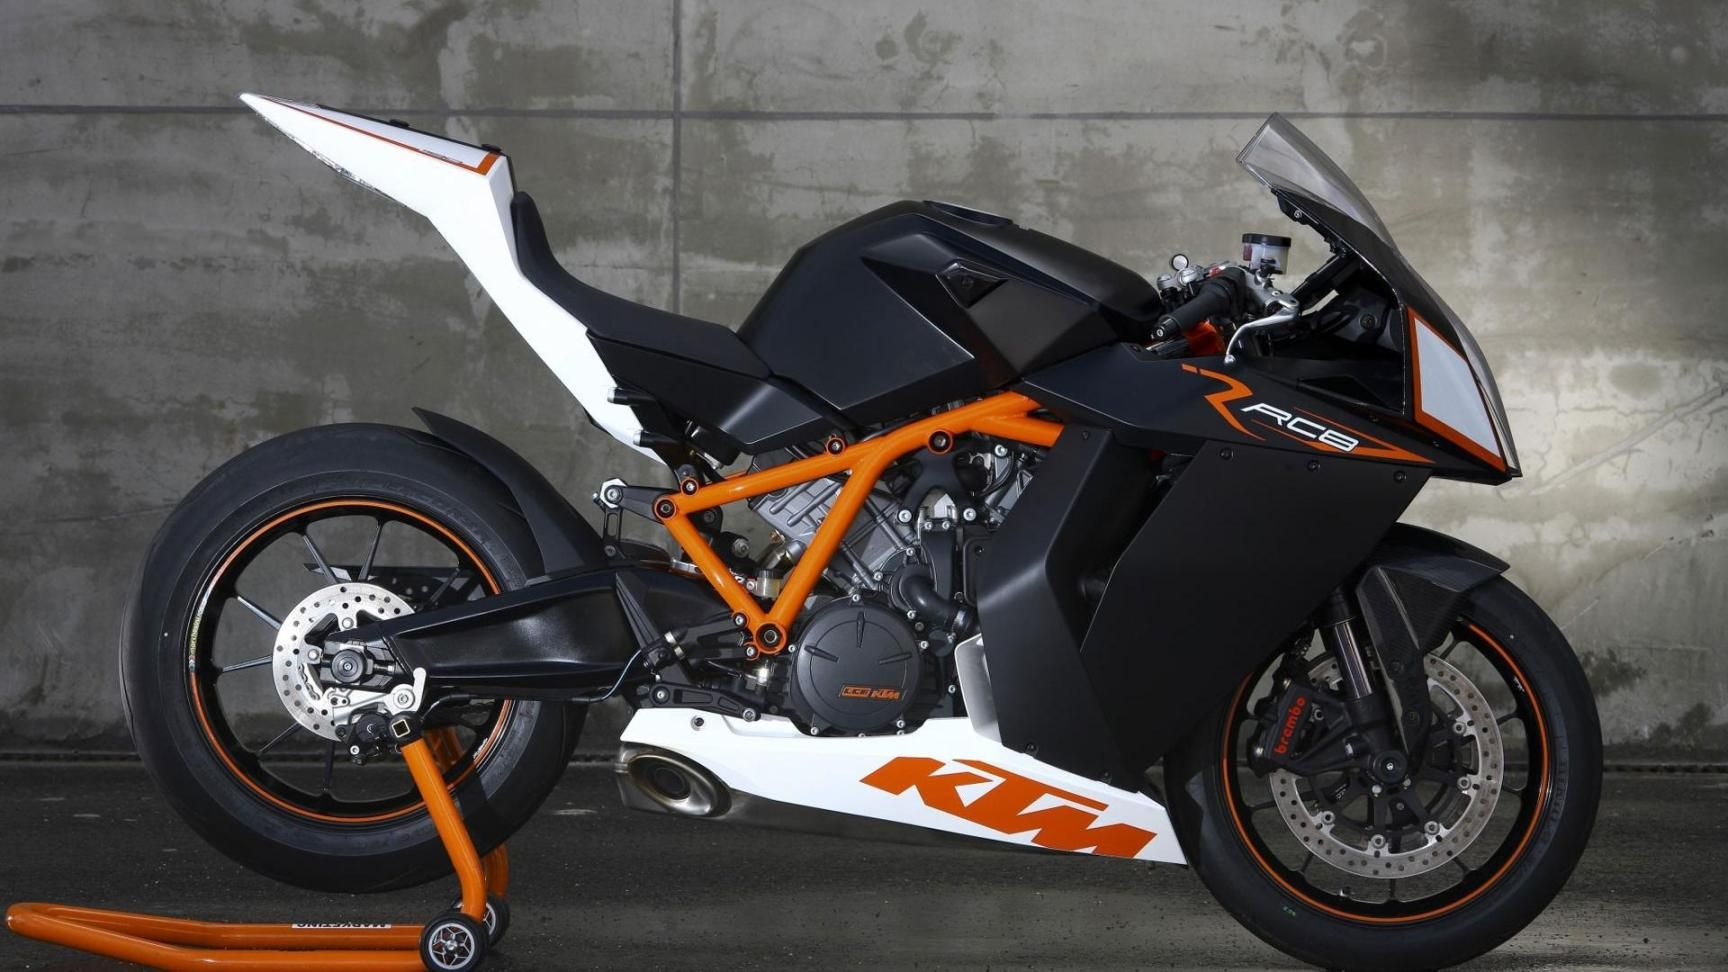 Ktm motorcycles hd wallpapers free wallaper downloads ktm sport - Ktm Motorcycle Hd Wallpaper